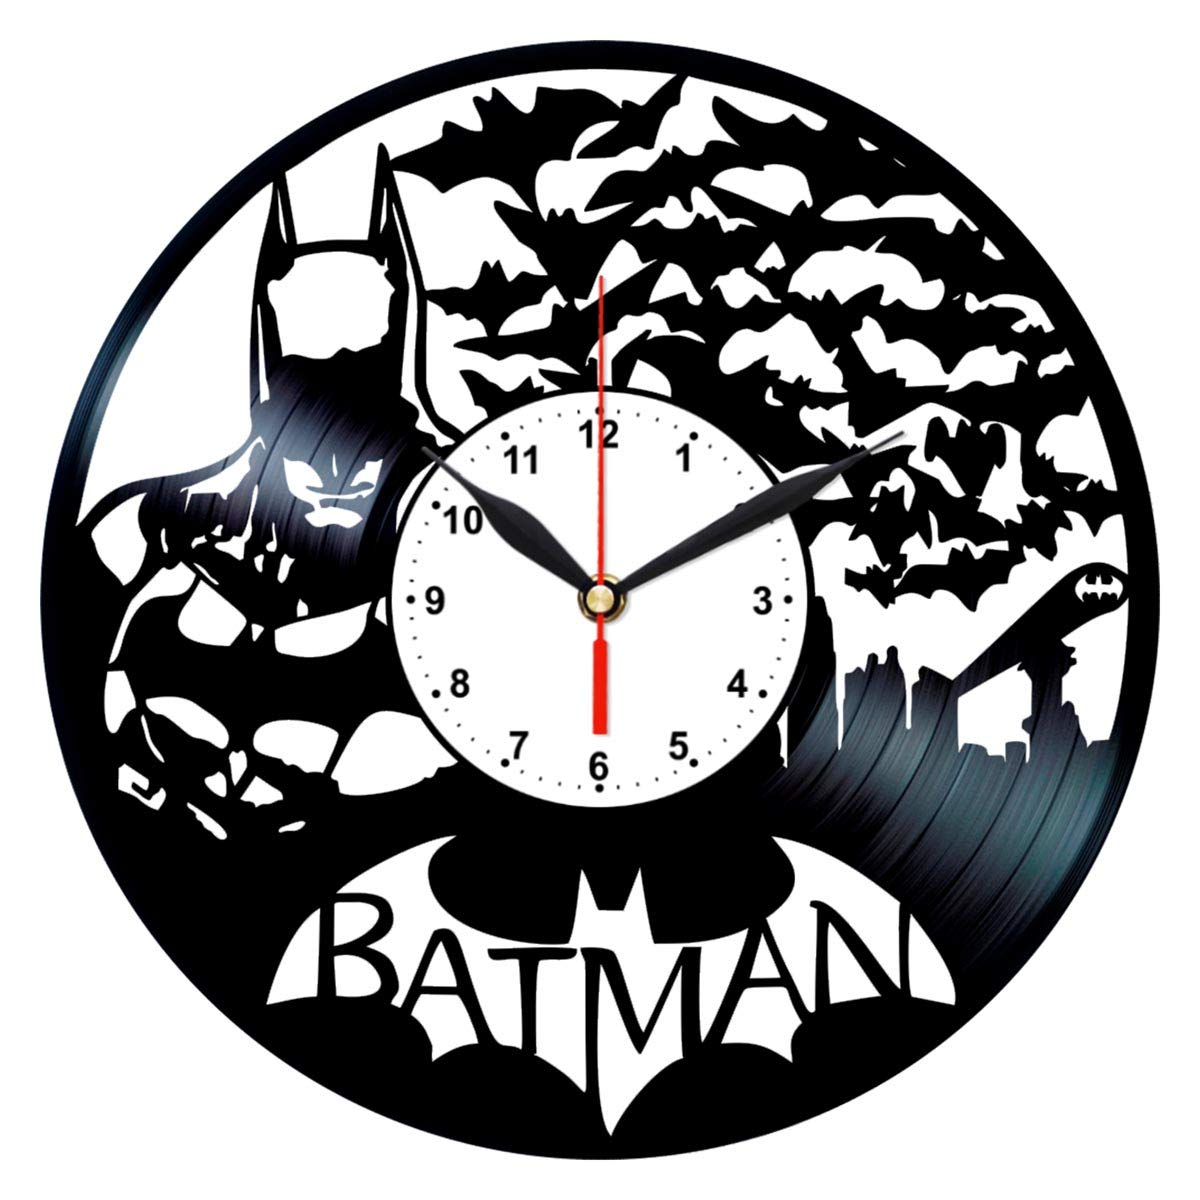 Amazon.com: Queen Clocks Batman Symbol Wall Clock - Unique ...